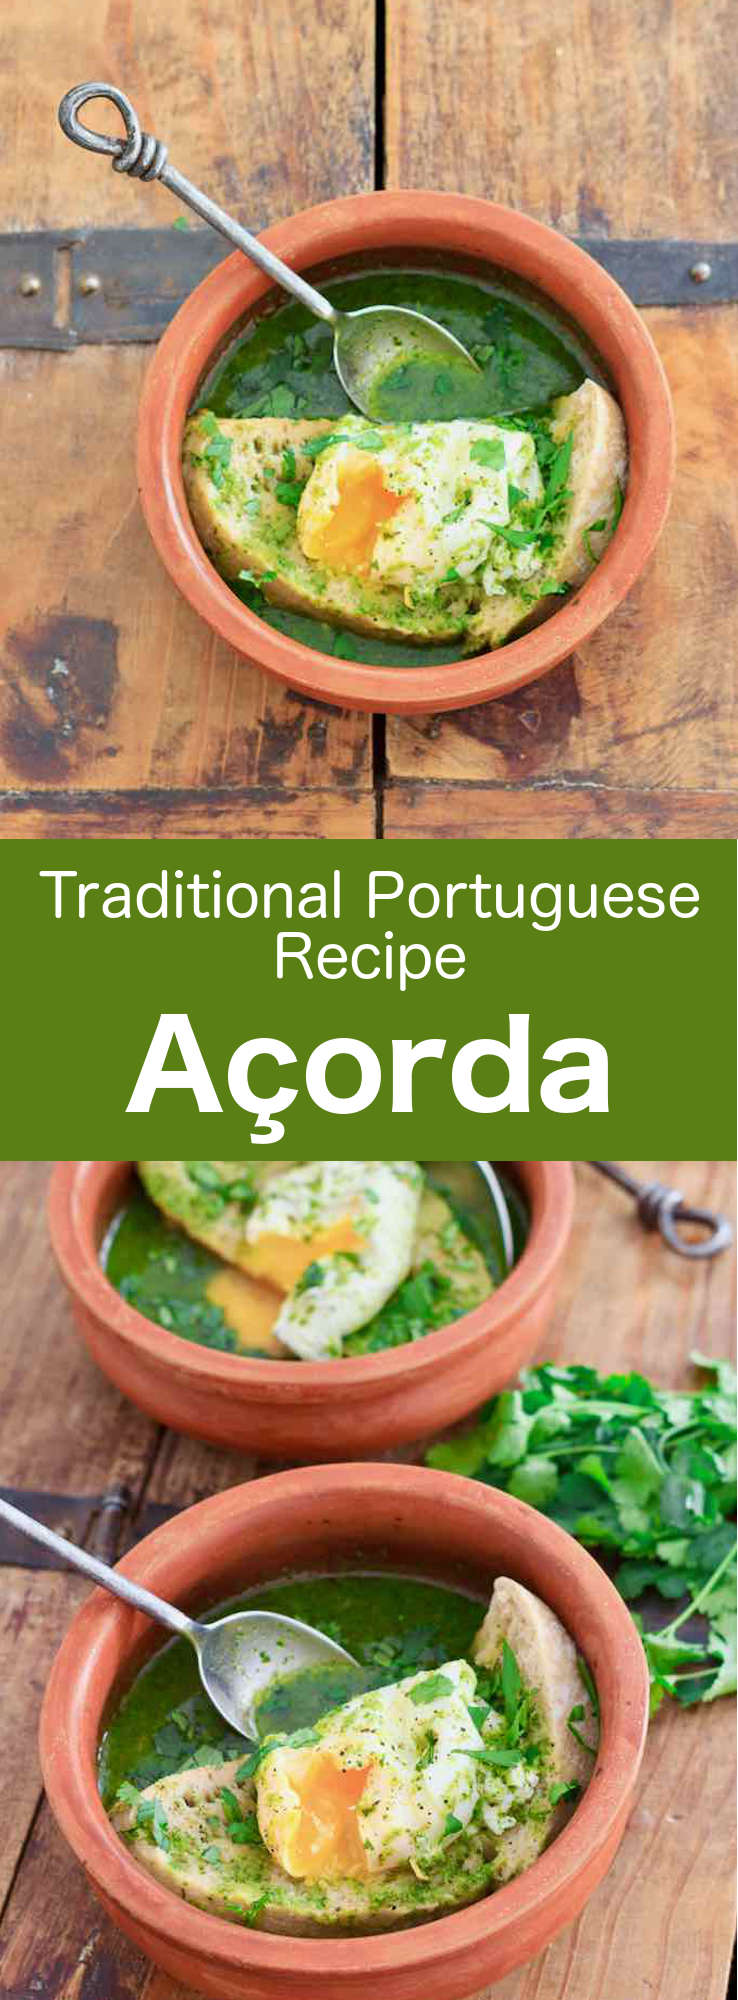 Açorda or sopa Alentejana, is the iconic soup of the Alentejo region of Portugal. It is prepared with eggs, bread, olive oil, garlic and cilantro, and can sometimes include seafood or meat. #Portugal #PortugueseRecipe #Soup #SoupRecipe #WorldCuisine #196flavors